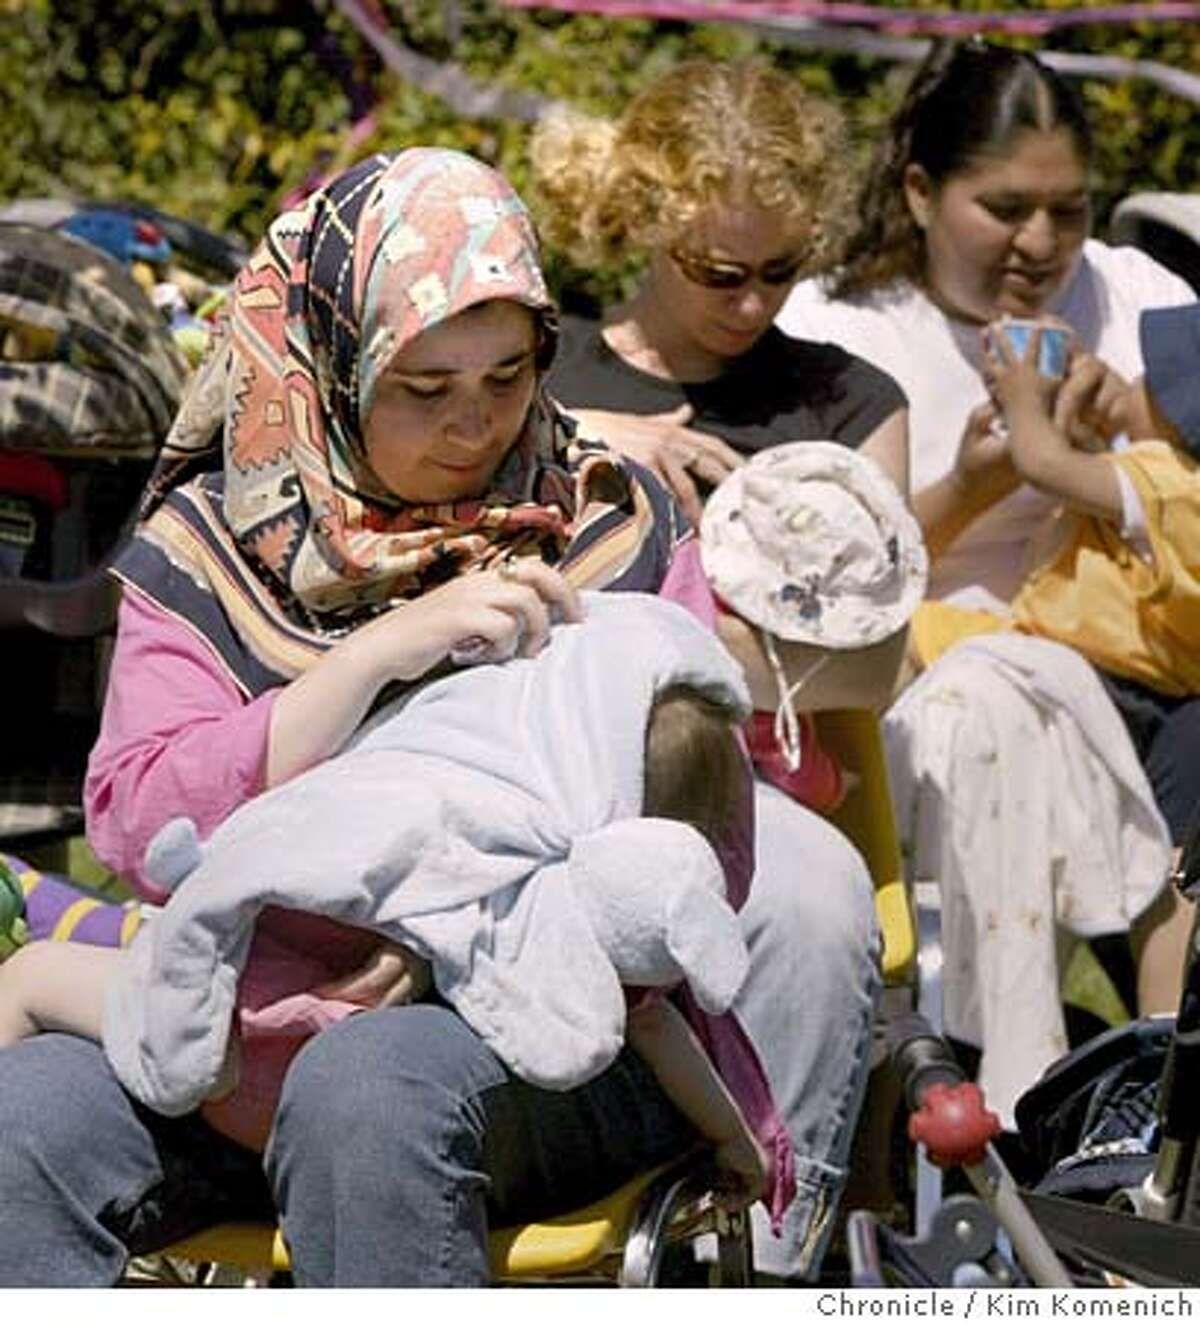 Leila Bouhedda of Berkeley, front, feeds Yasmin, 15 mos., and behjind her, Jeanine Strickland of Berkeley feeds Pepper, 15, weeks, during the event. Woman holding cup in background is not identified. Alameda County's WIC (Women, Infants, Children) Program and the Alameda Breastfeeding Coalition hold a mass breastfeeding in four locations, including Berkeley's Cedar Rose Park, pictured here. San Francisco Chronicle Photo by Kim Komenich 8/4/05